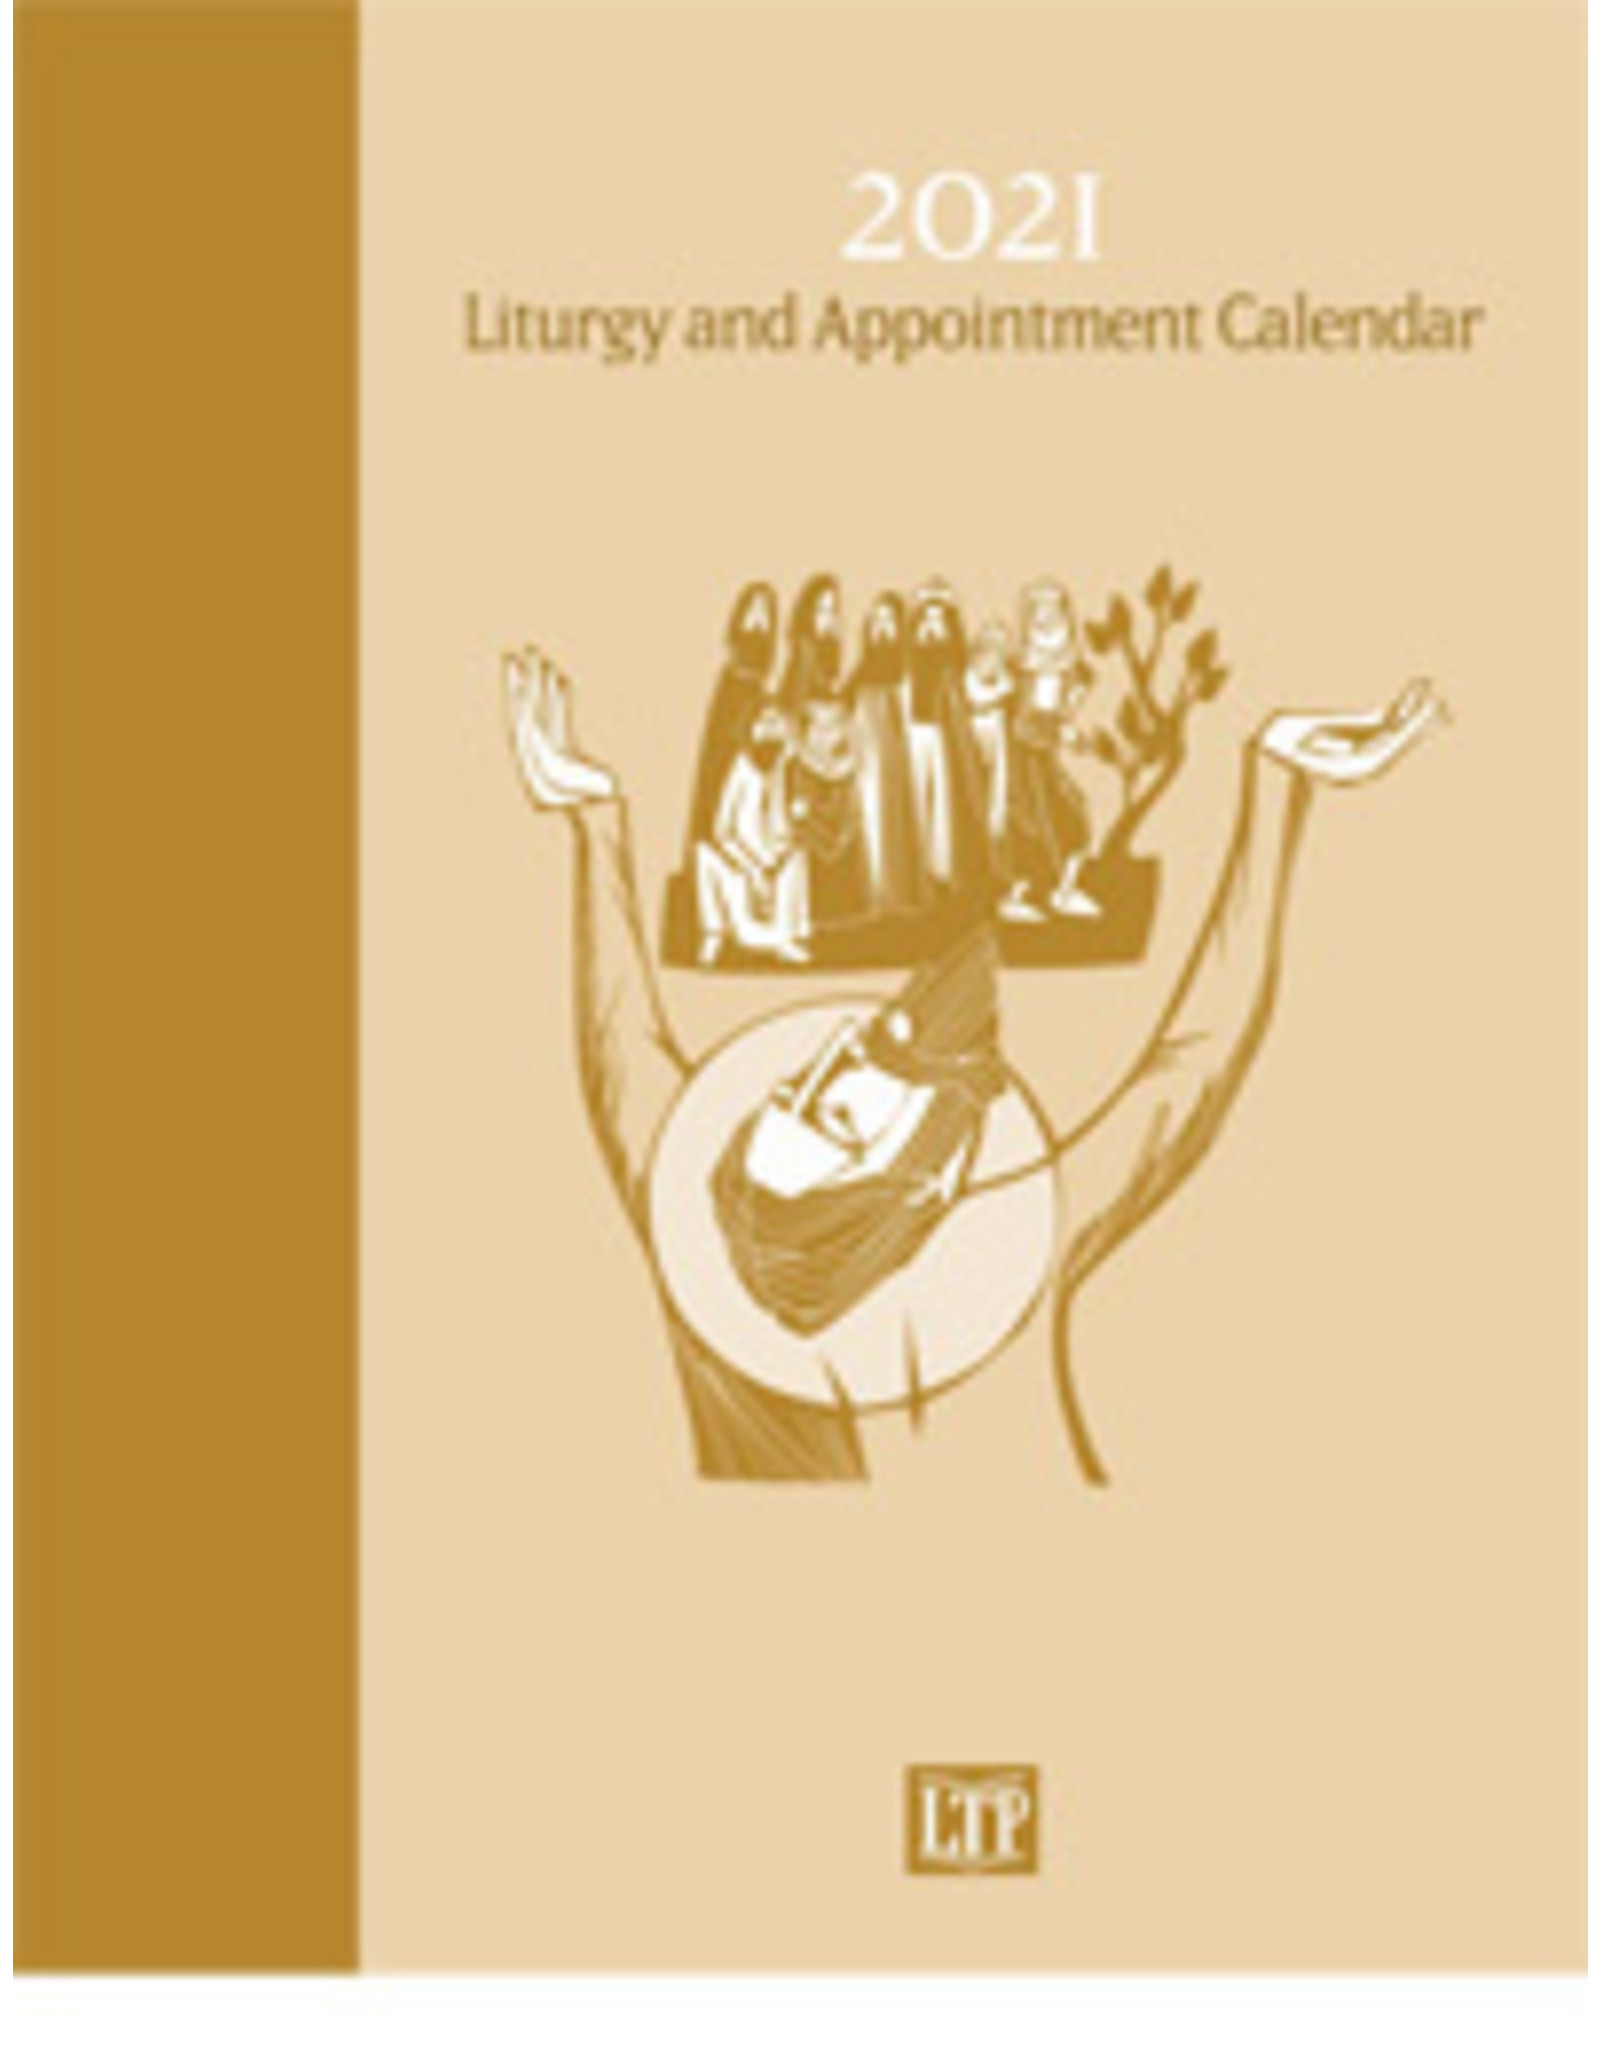 2021 Liturgy and Appointment Calendar